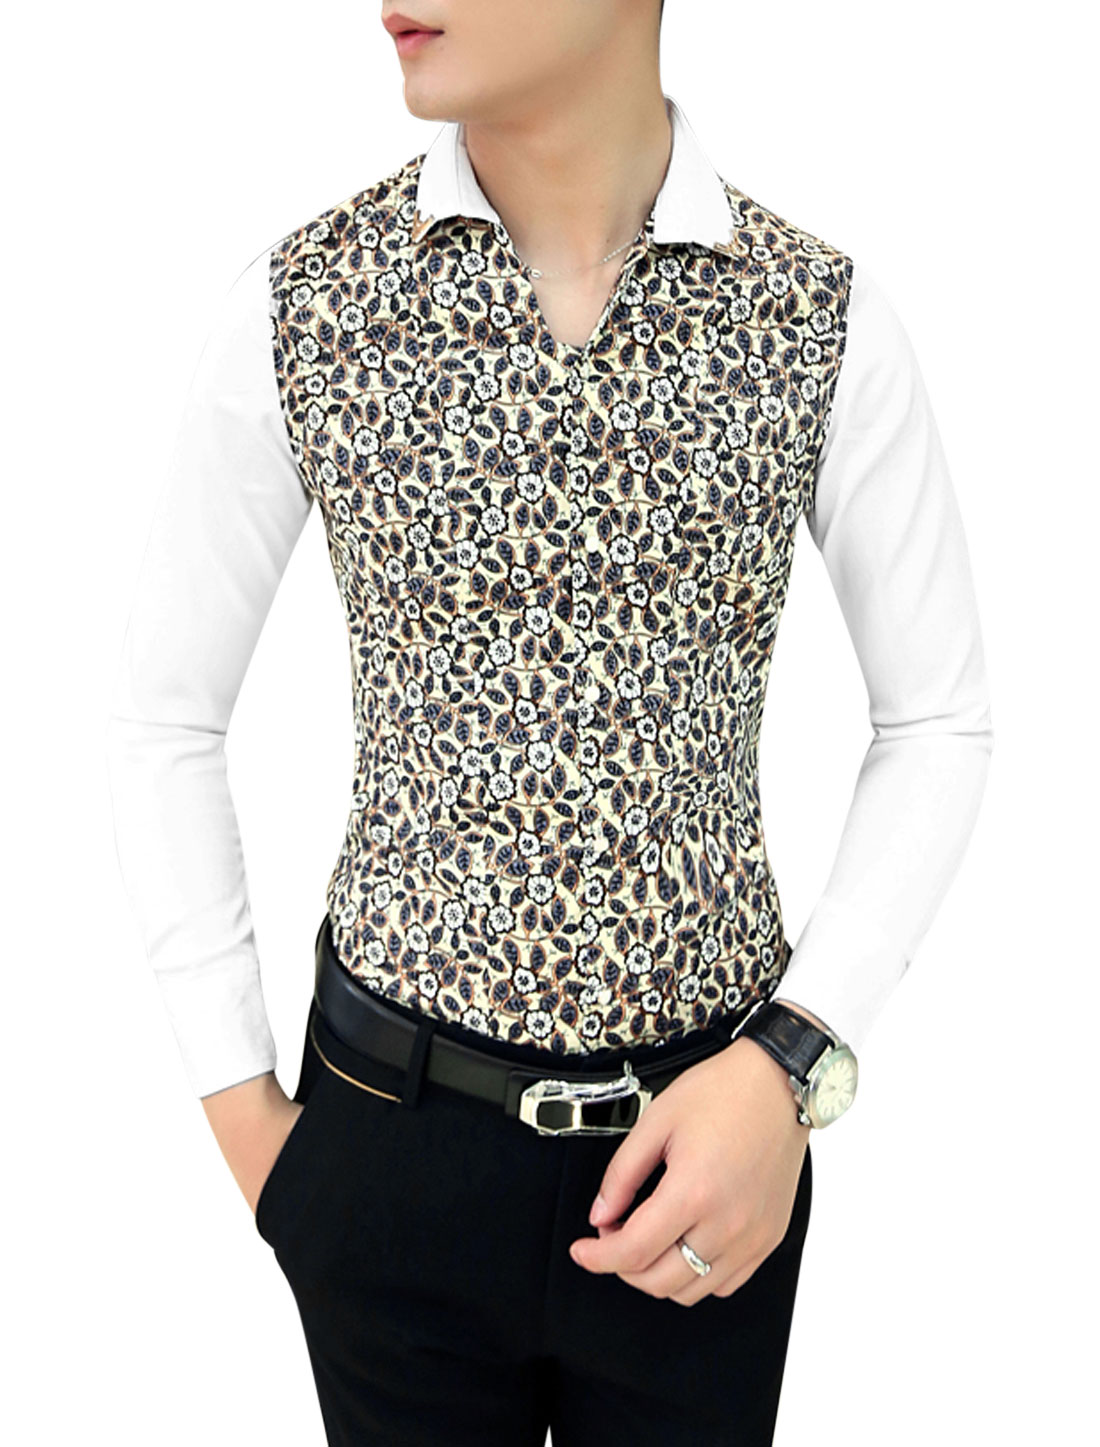 Men NEW Contrast Long Sleeves Contrast Floral Print Slim Cut Shirt Beige White M